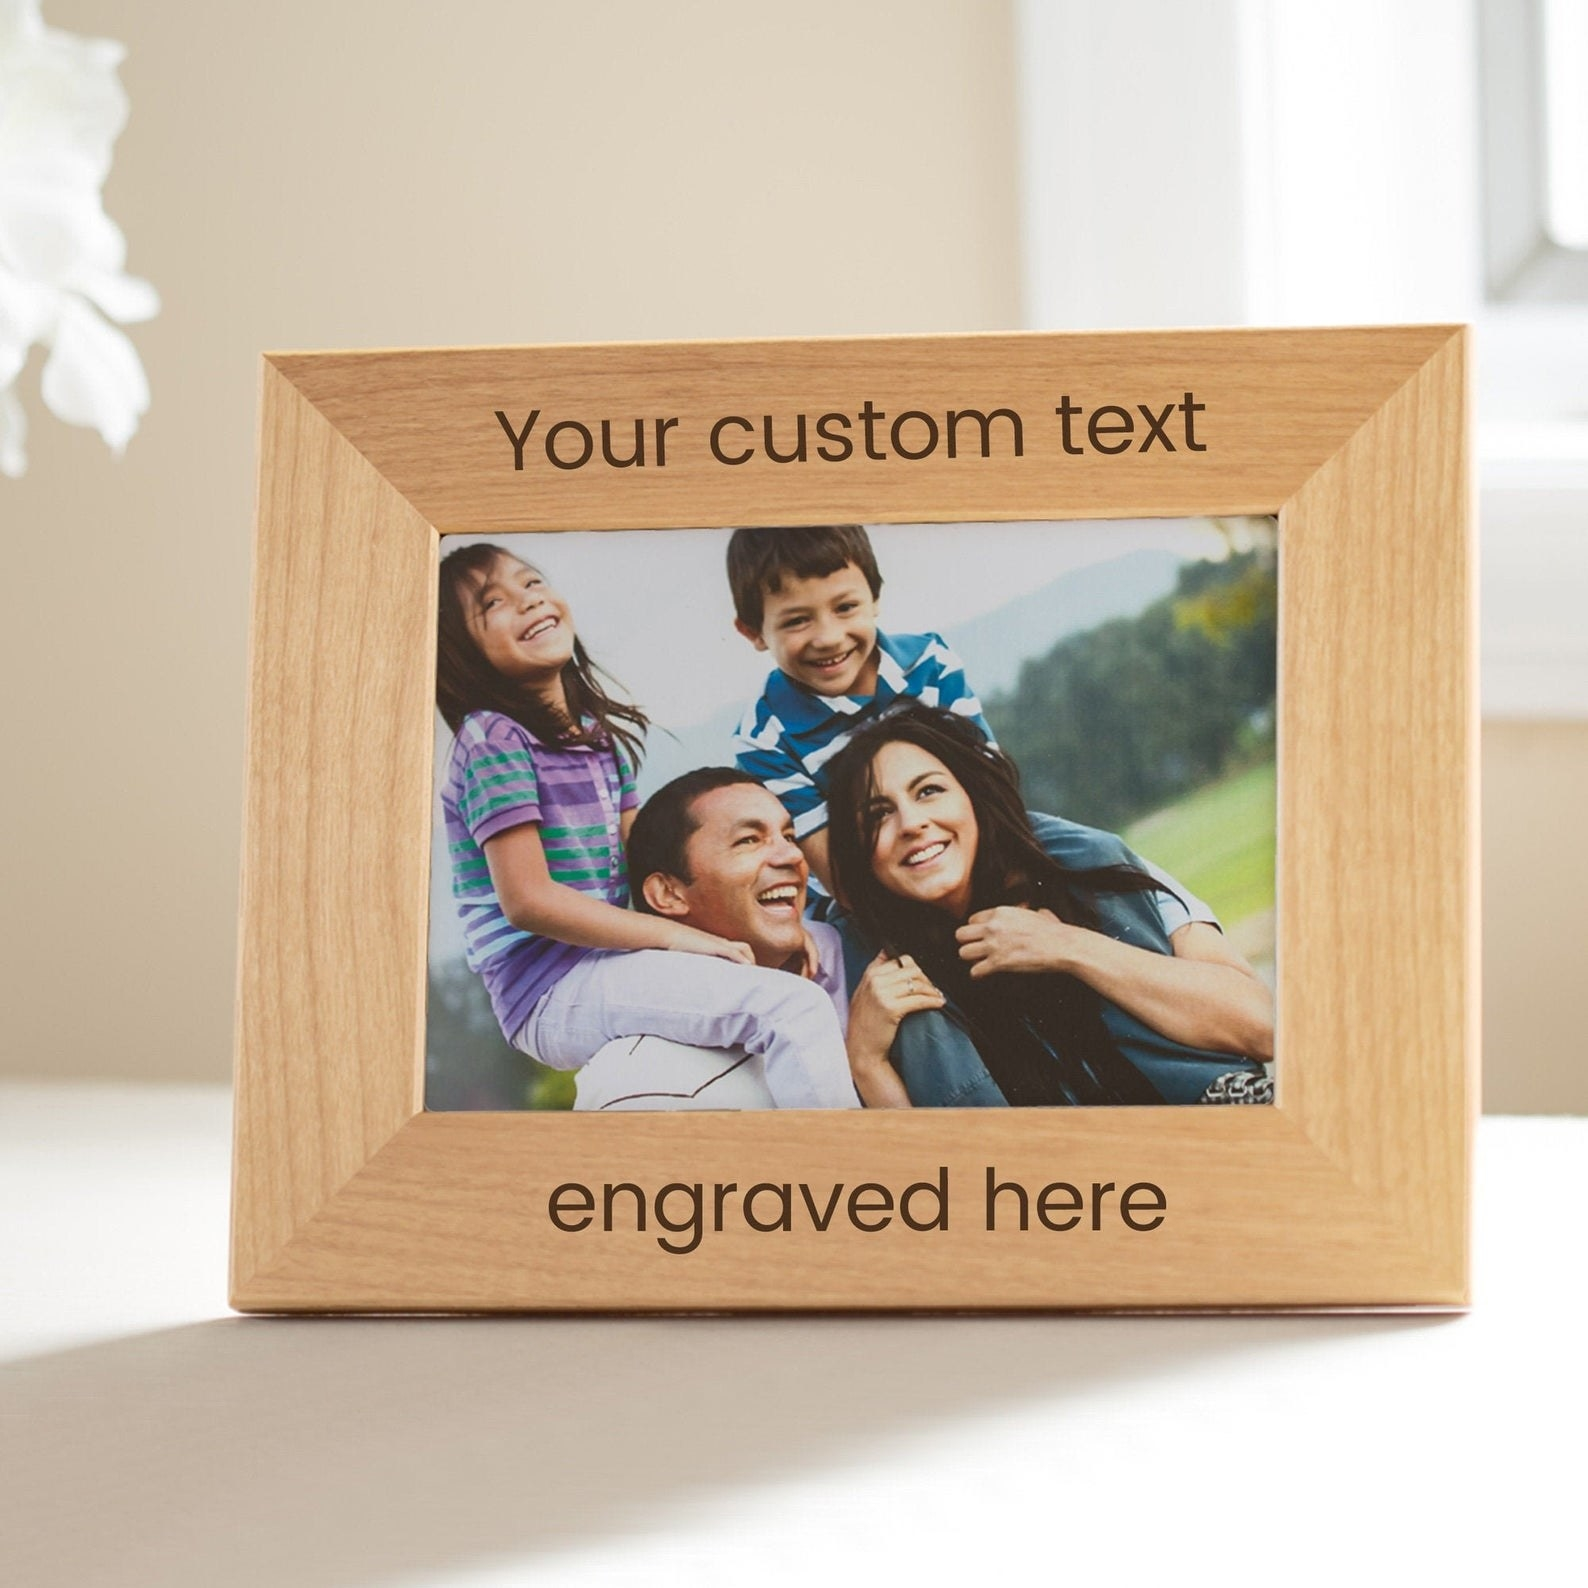 Photo of wood photo frame with text engraved on the top and bottom